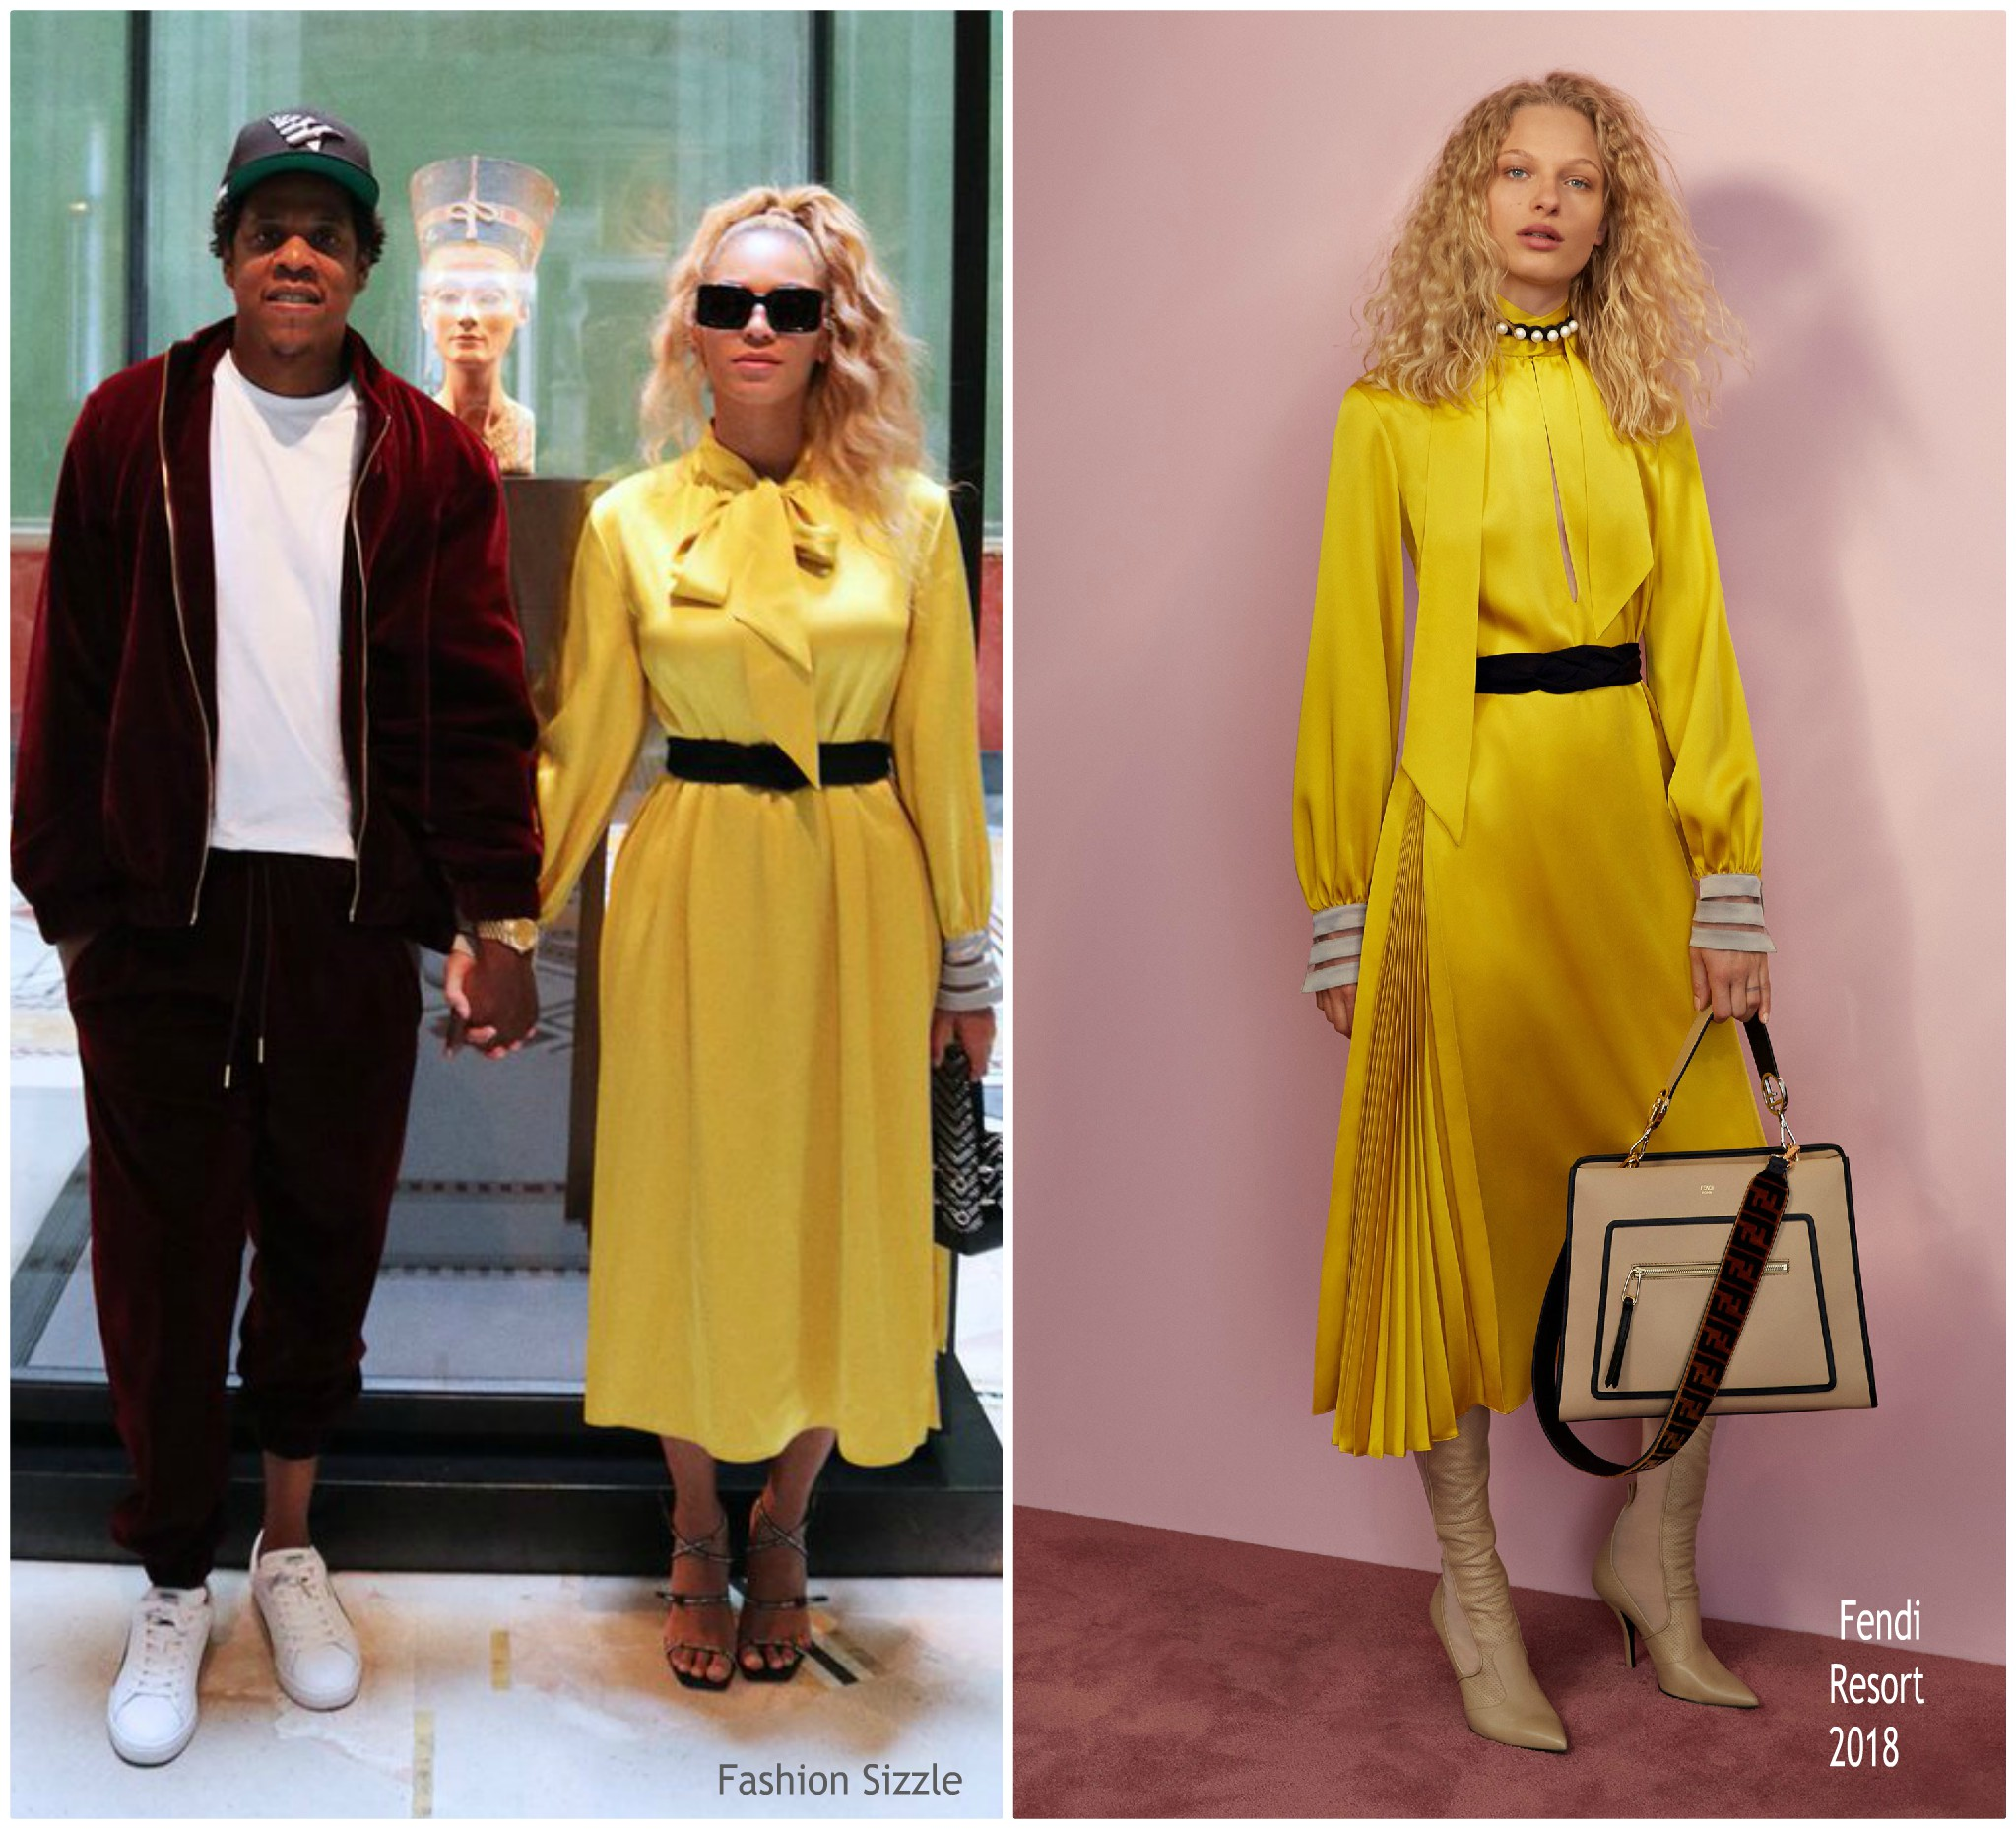 beyonce-knowles-vacations-in-fendi